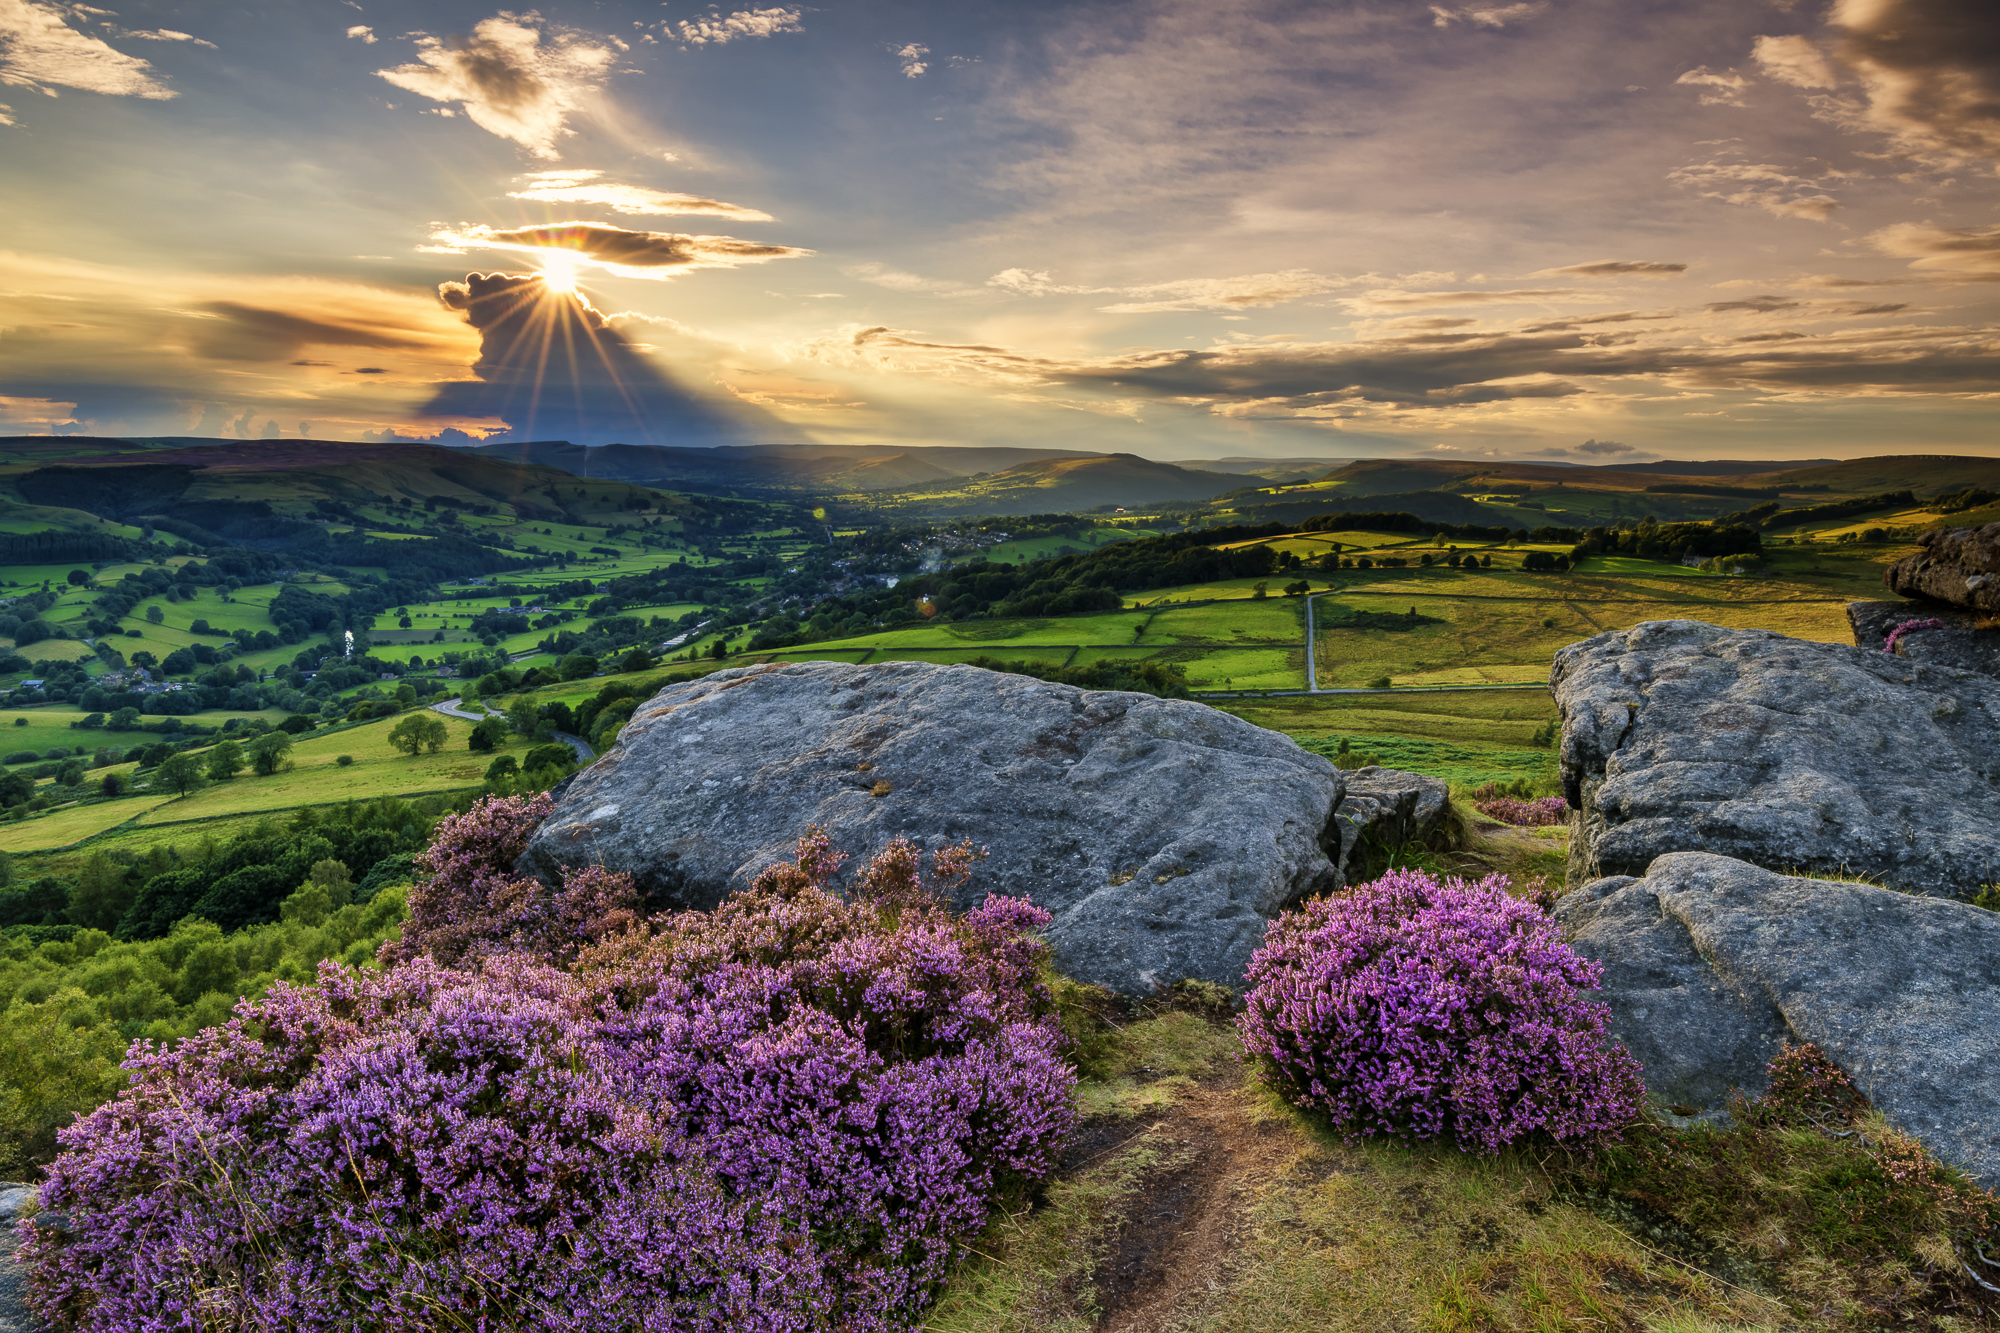 Millstone Edge at Sunset, Peak District National Park, Derbyshire, England